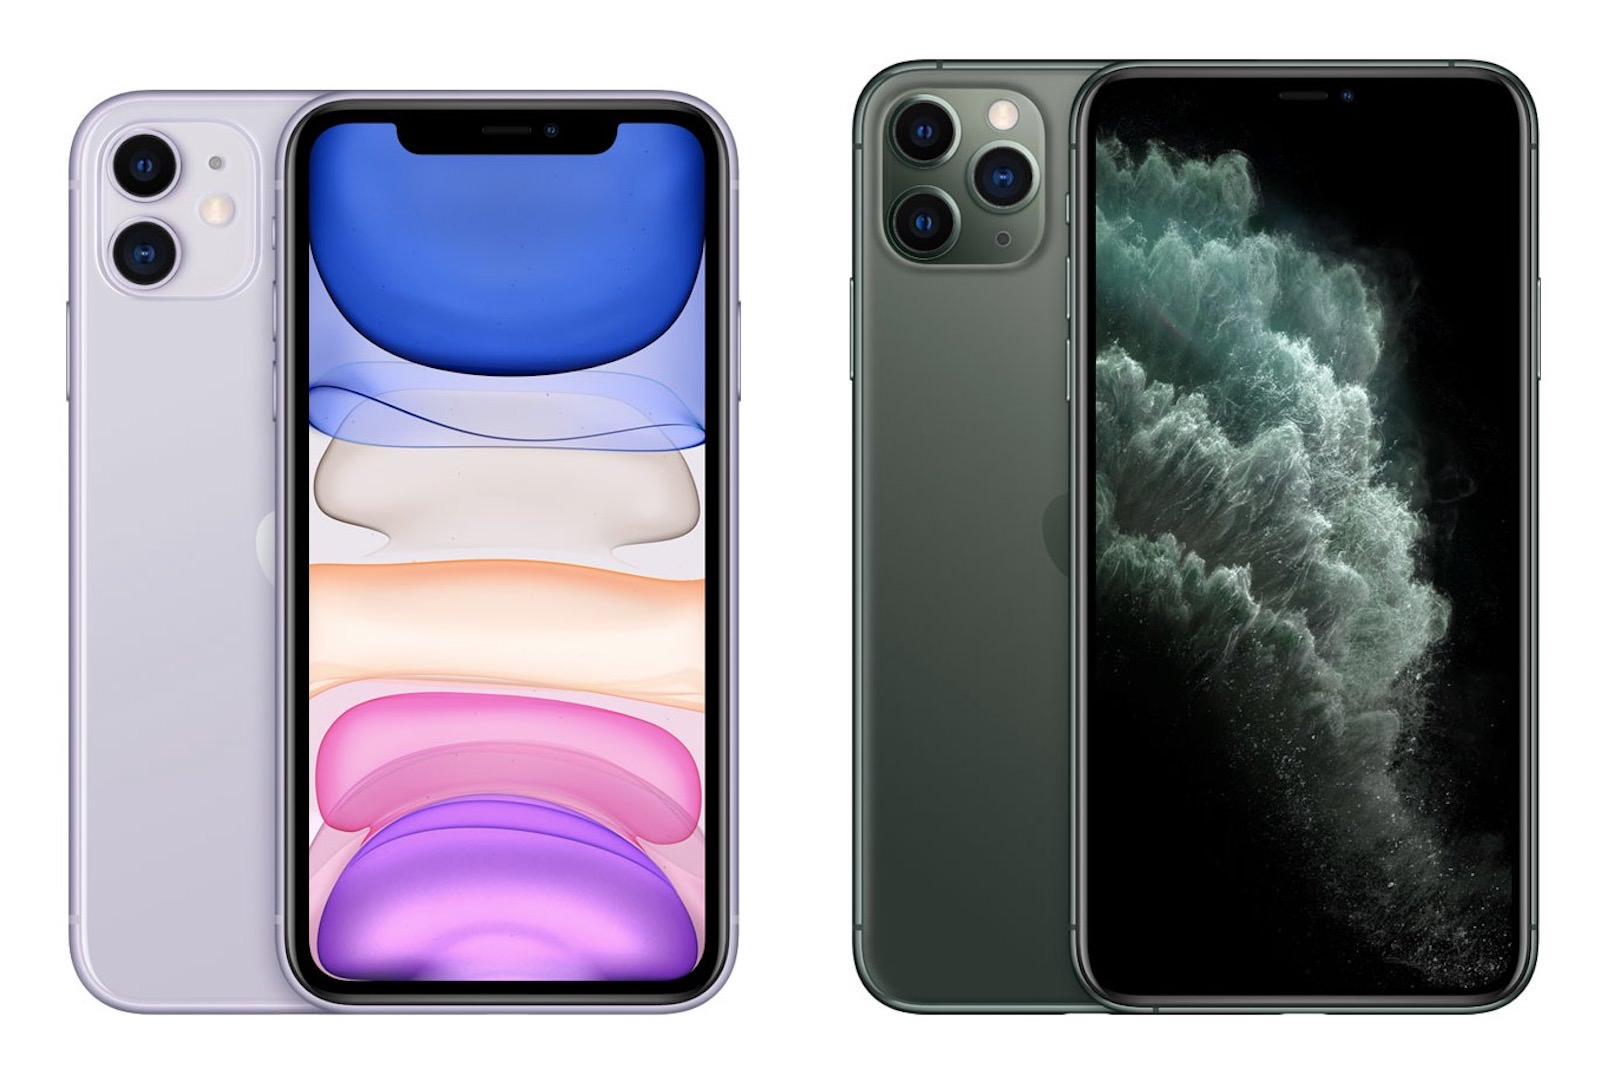 iphone11-vs-iphone-11-pro-max.jpg